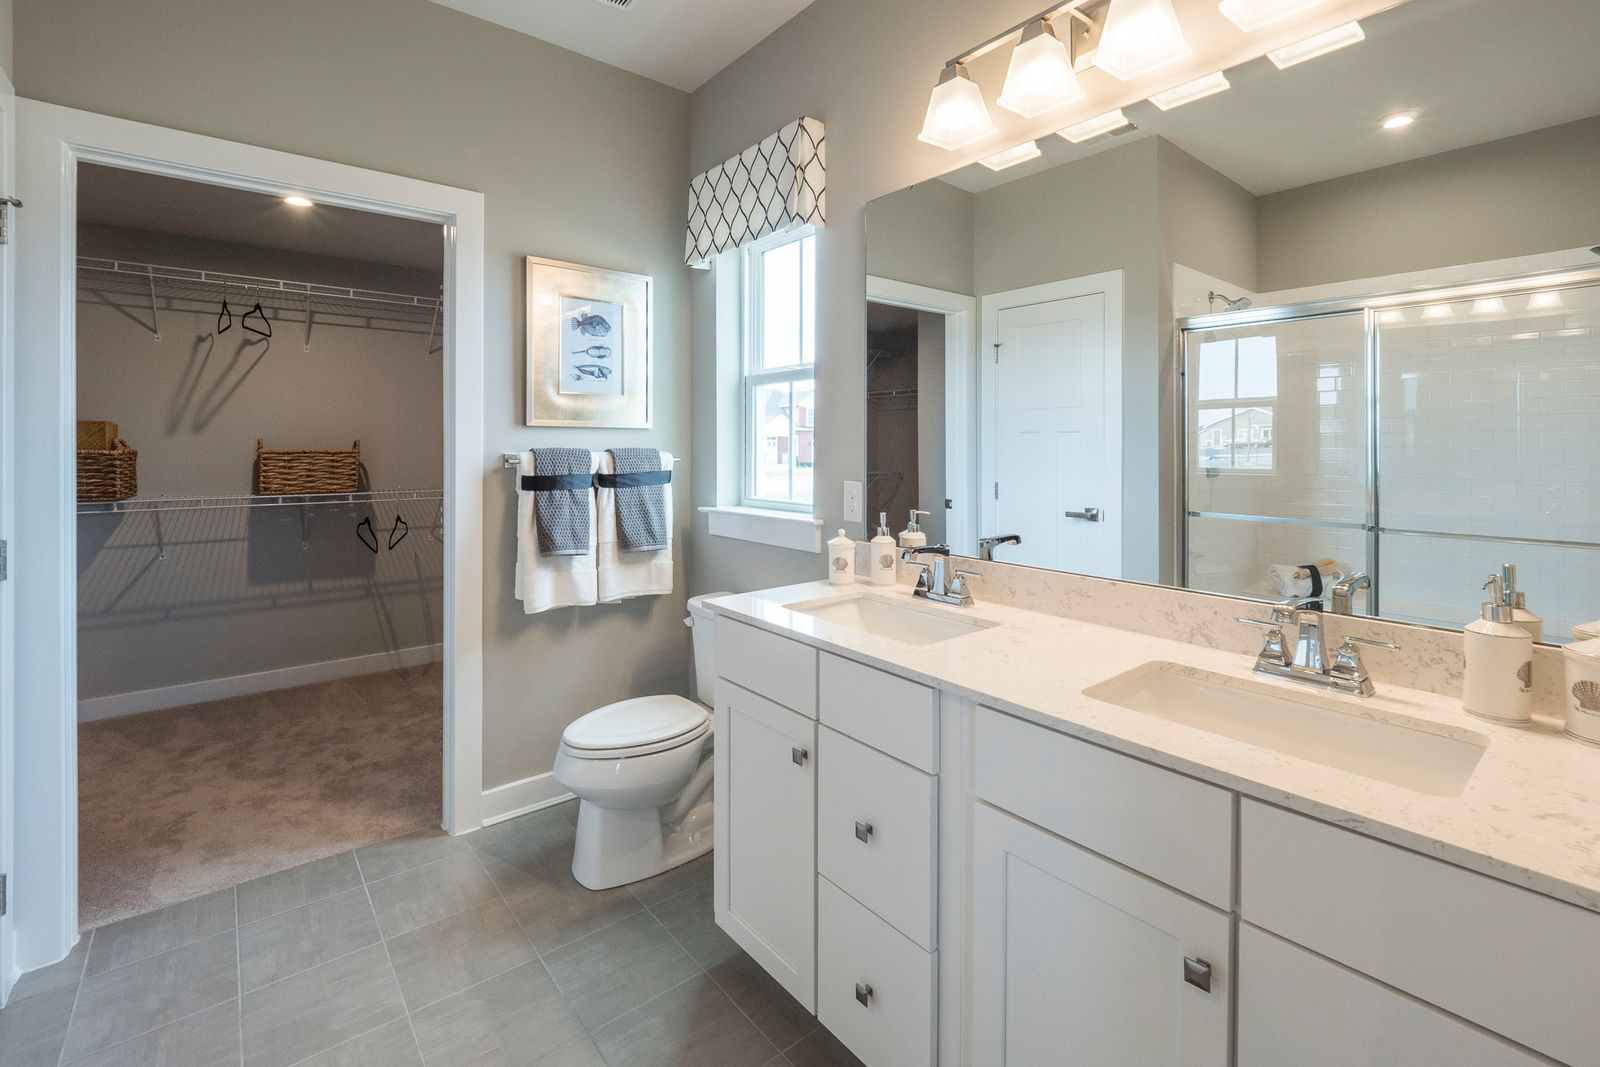 Bathroom featured in the Bramante By Ryan Homes in Warren County, NJ